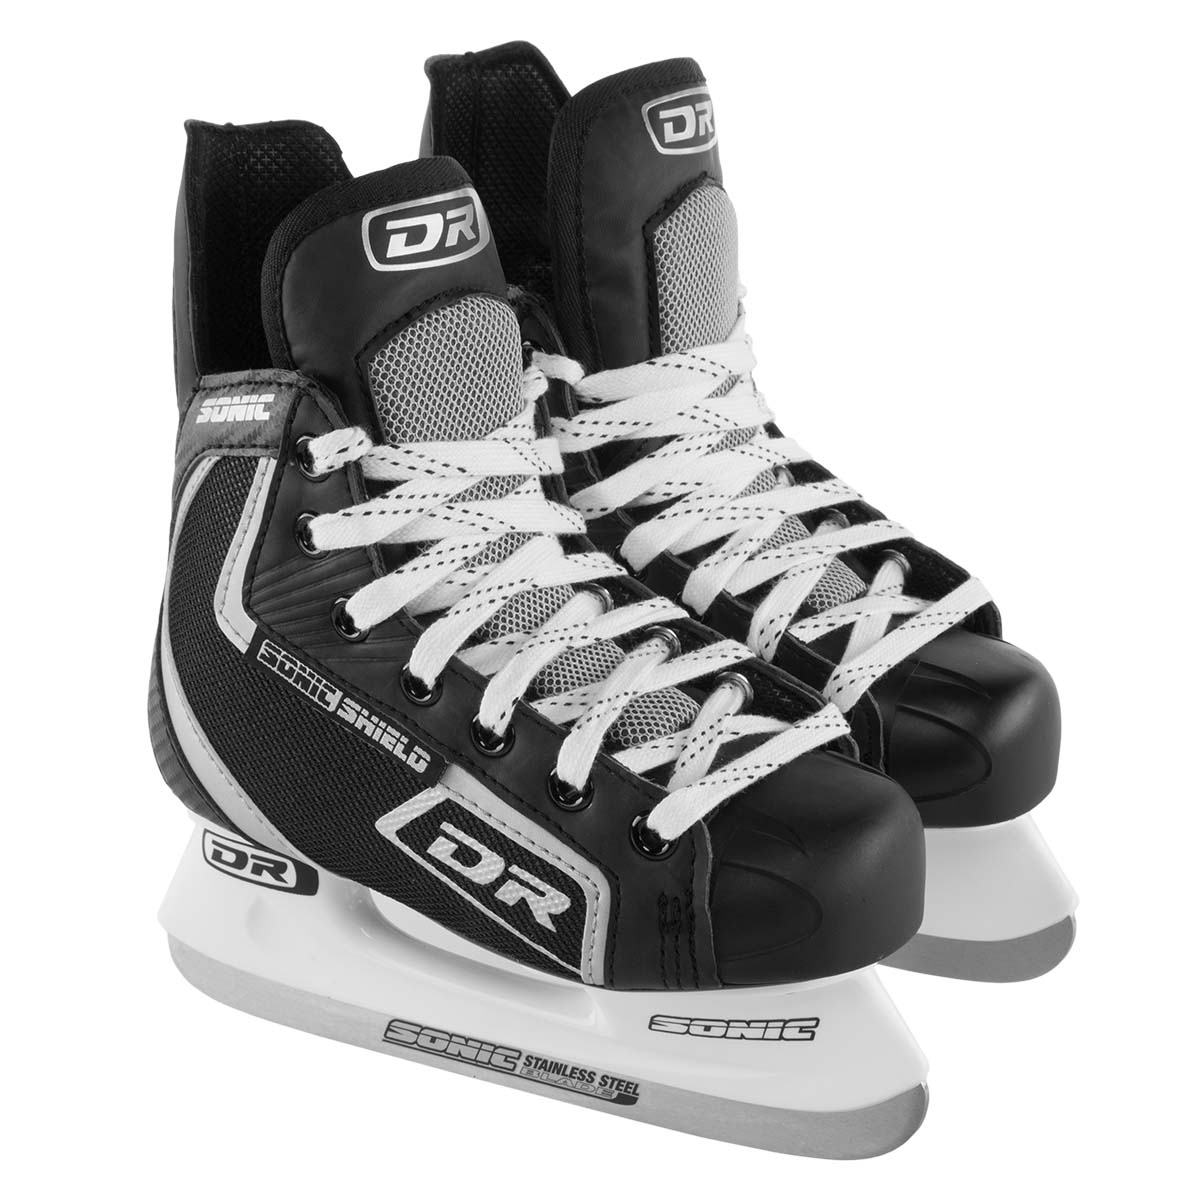 DR Sports Sonic Shield Boys Ice Hockey Skates For Kids Stainless Steel Blades Laces Eyelets Athletic Shoe by